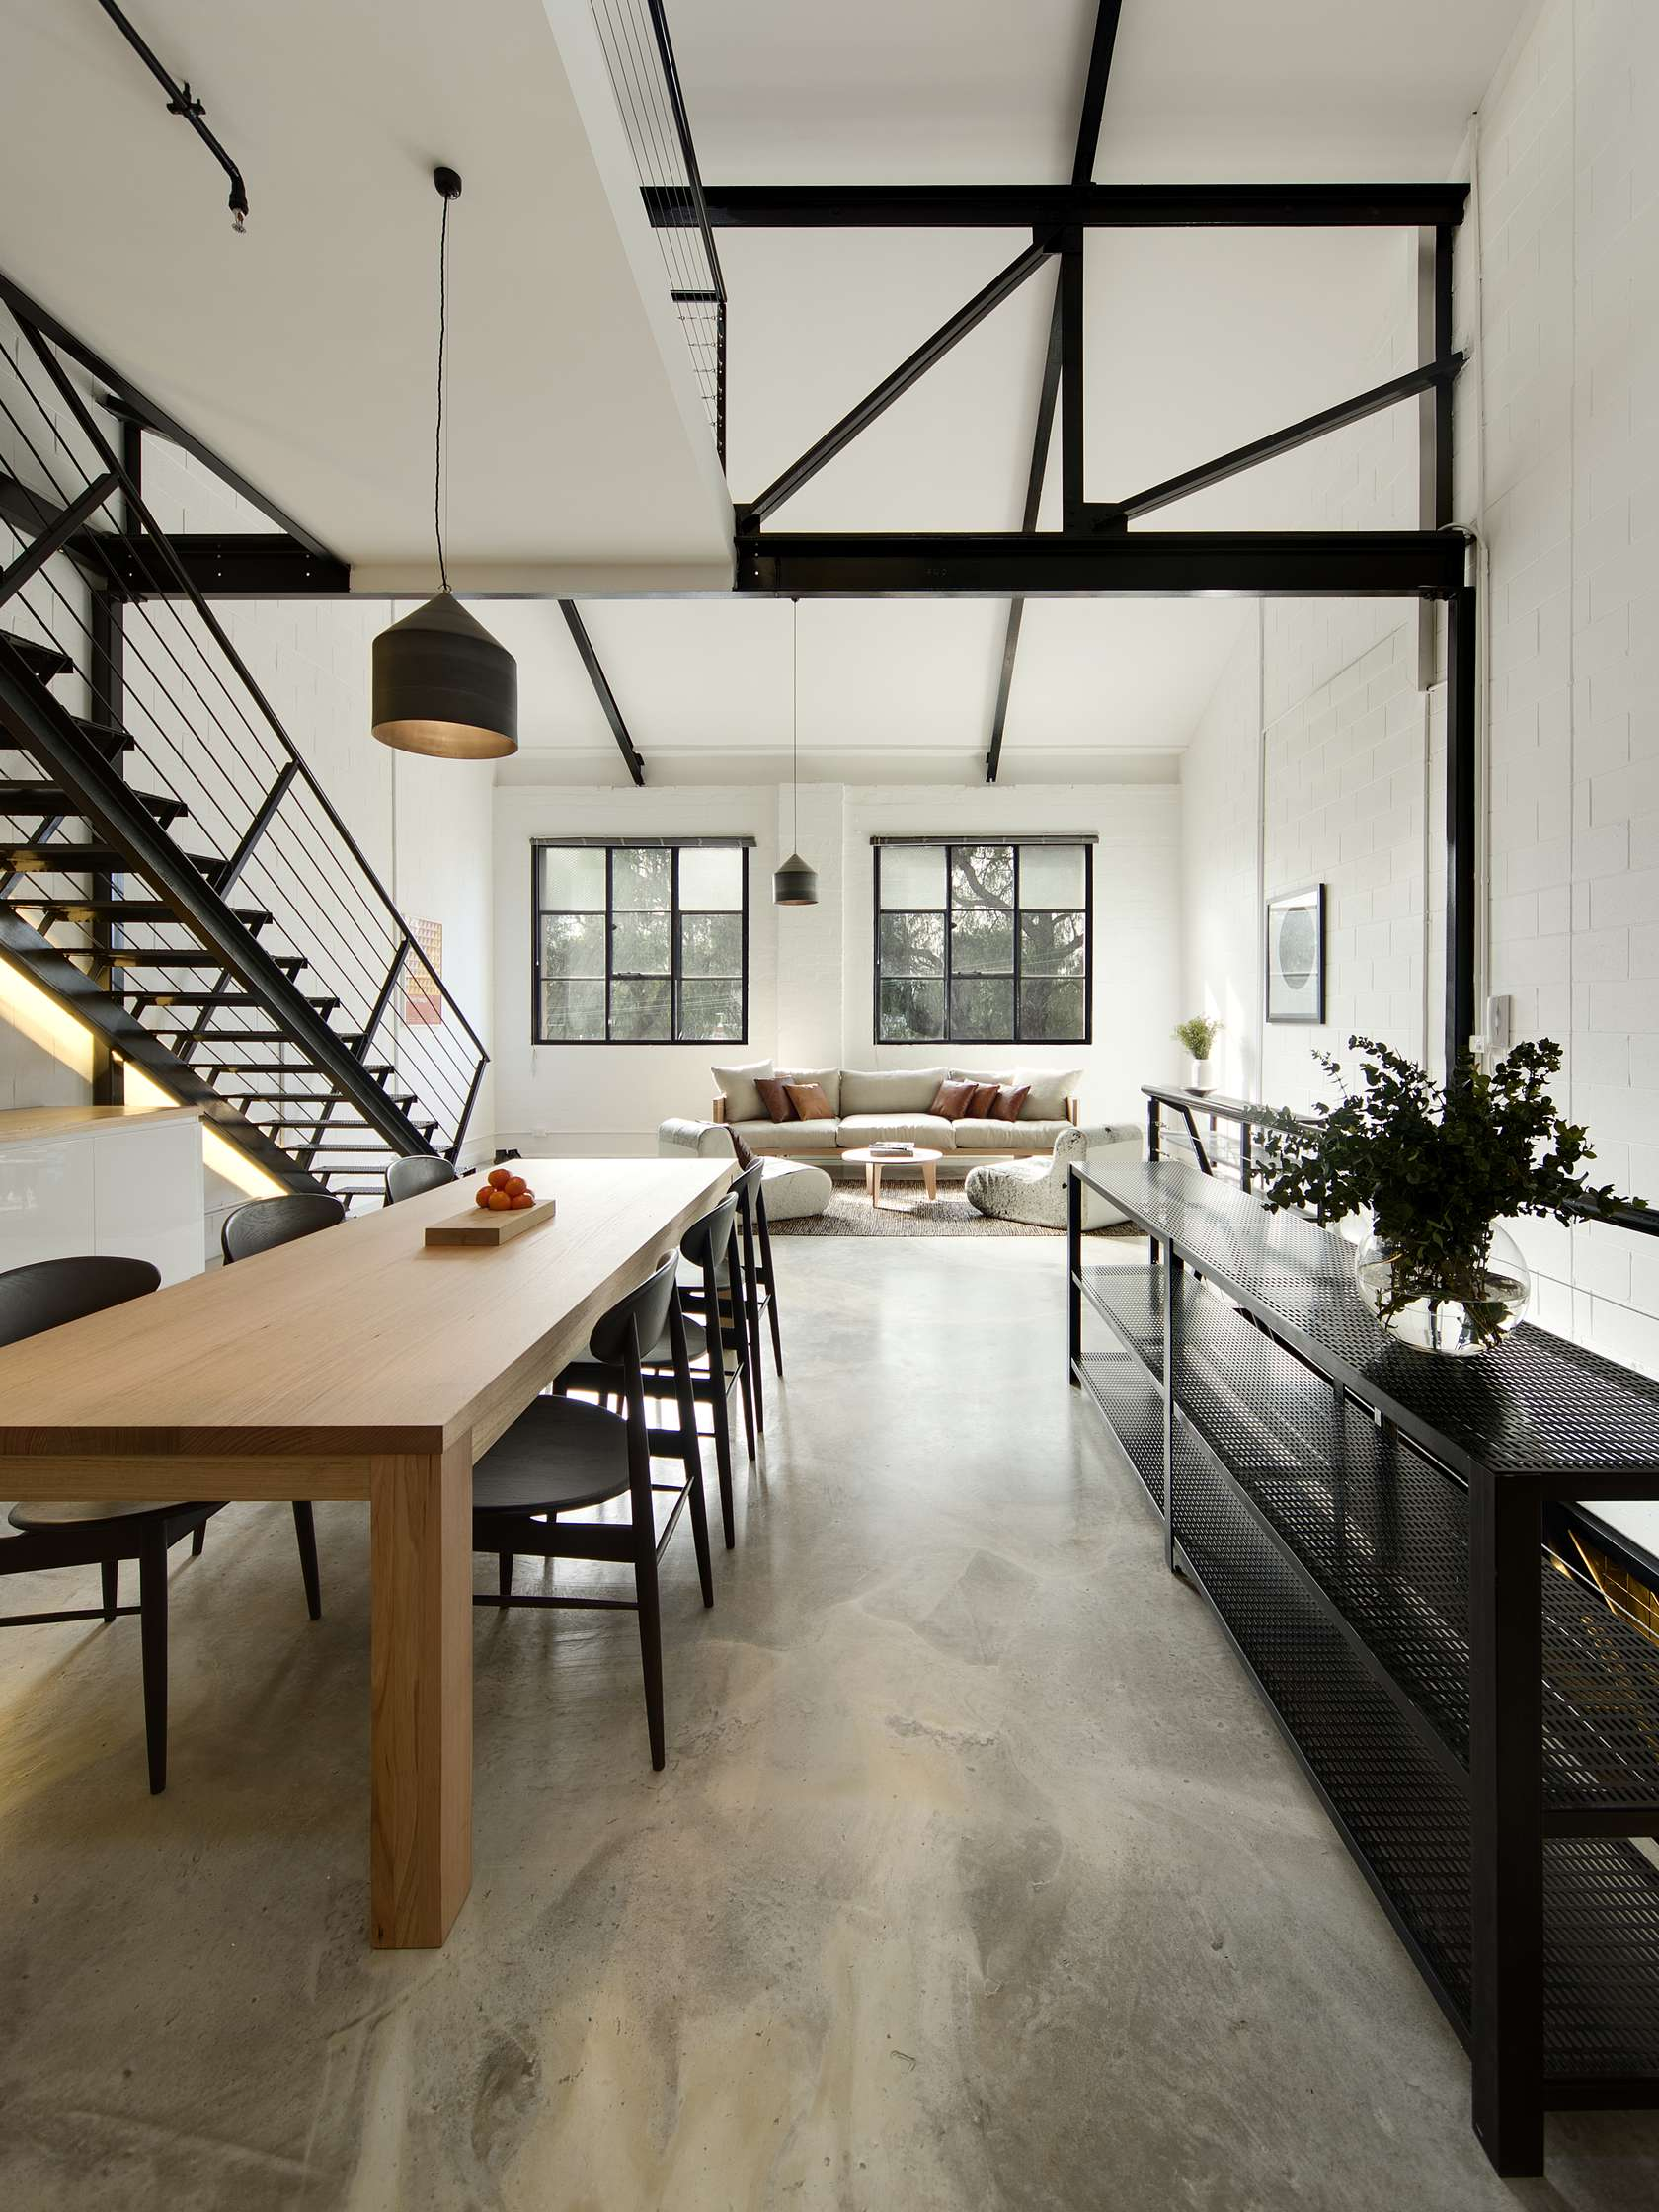 Regent Street Warehouse by Techne Architecture (via Lunchbox Architect)